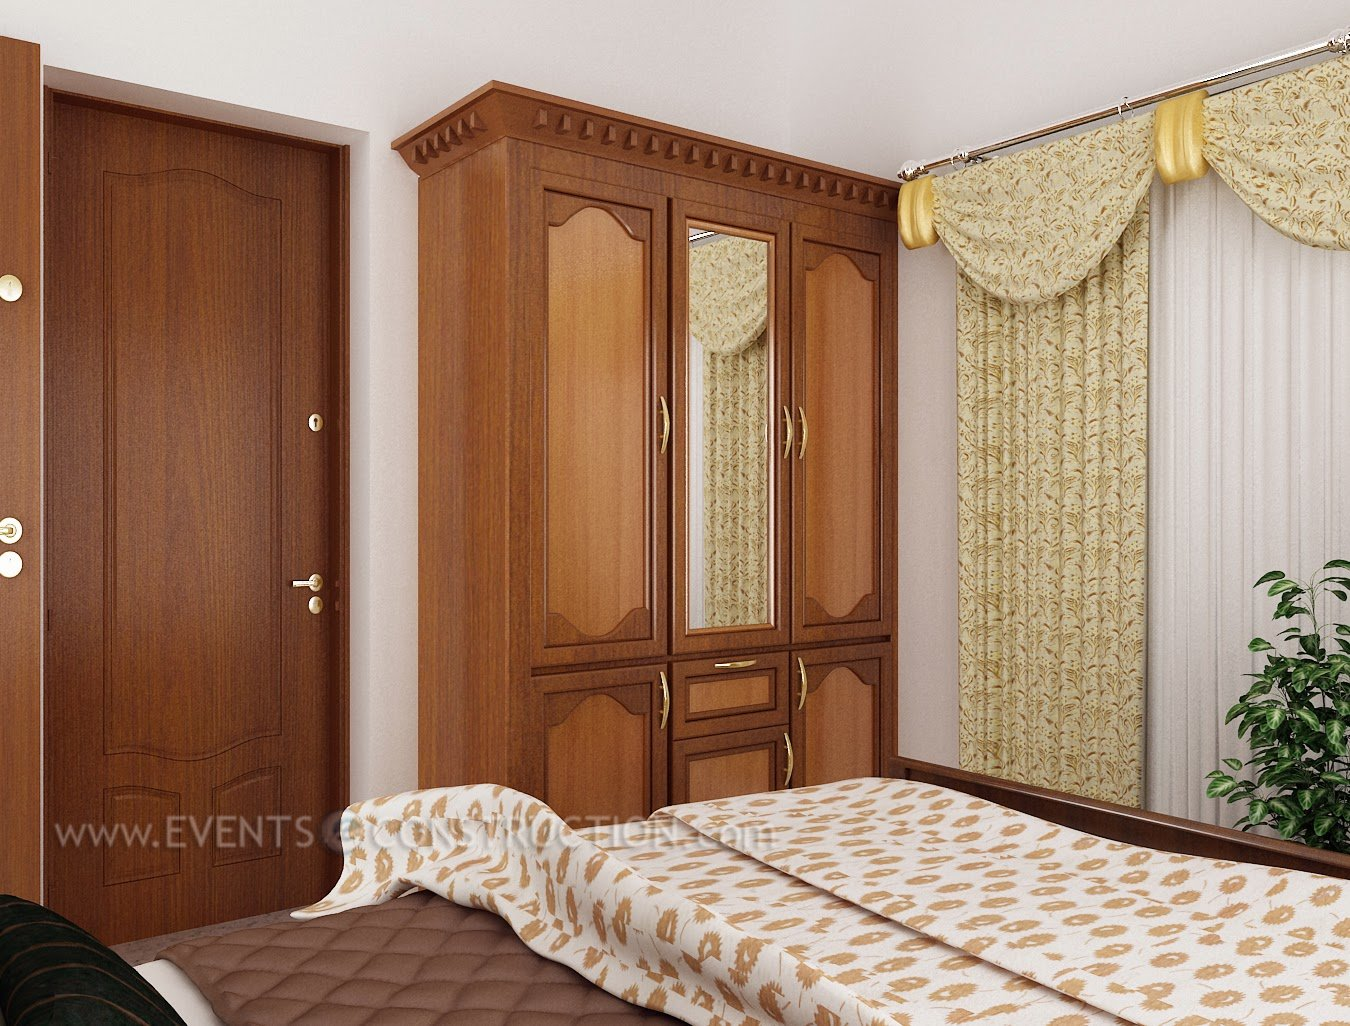 Best Bedroom Cupboard Design In Kerala Psoriasisguru Com With Pictures